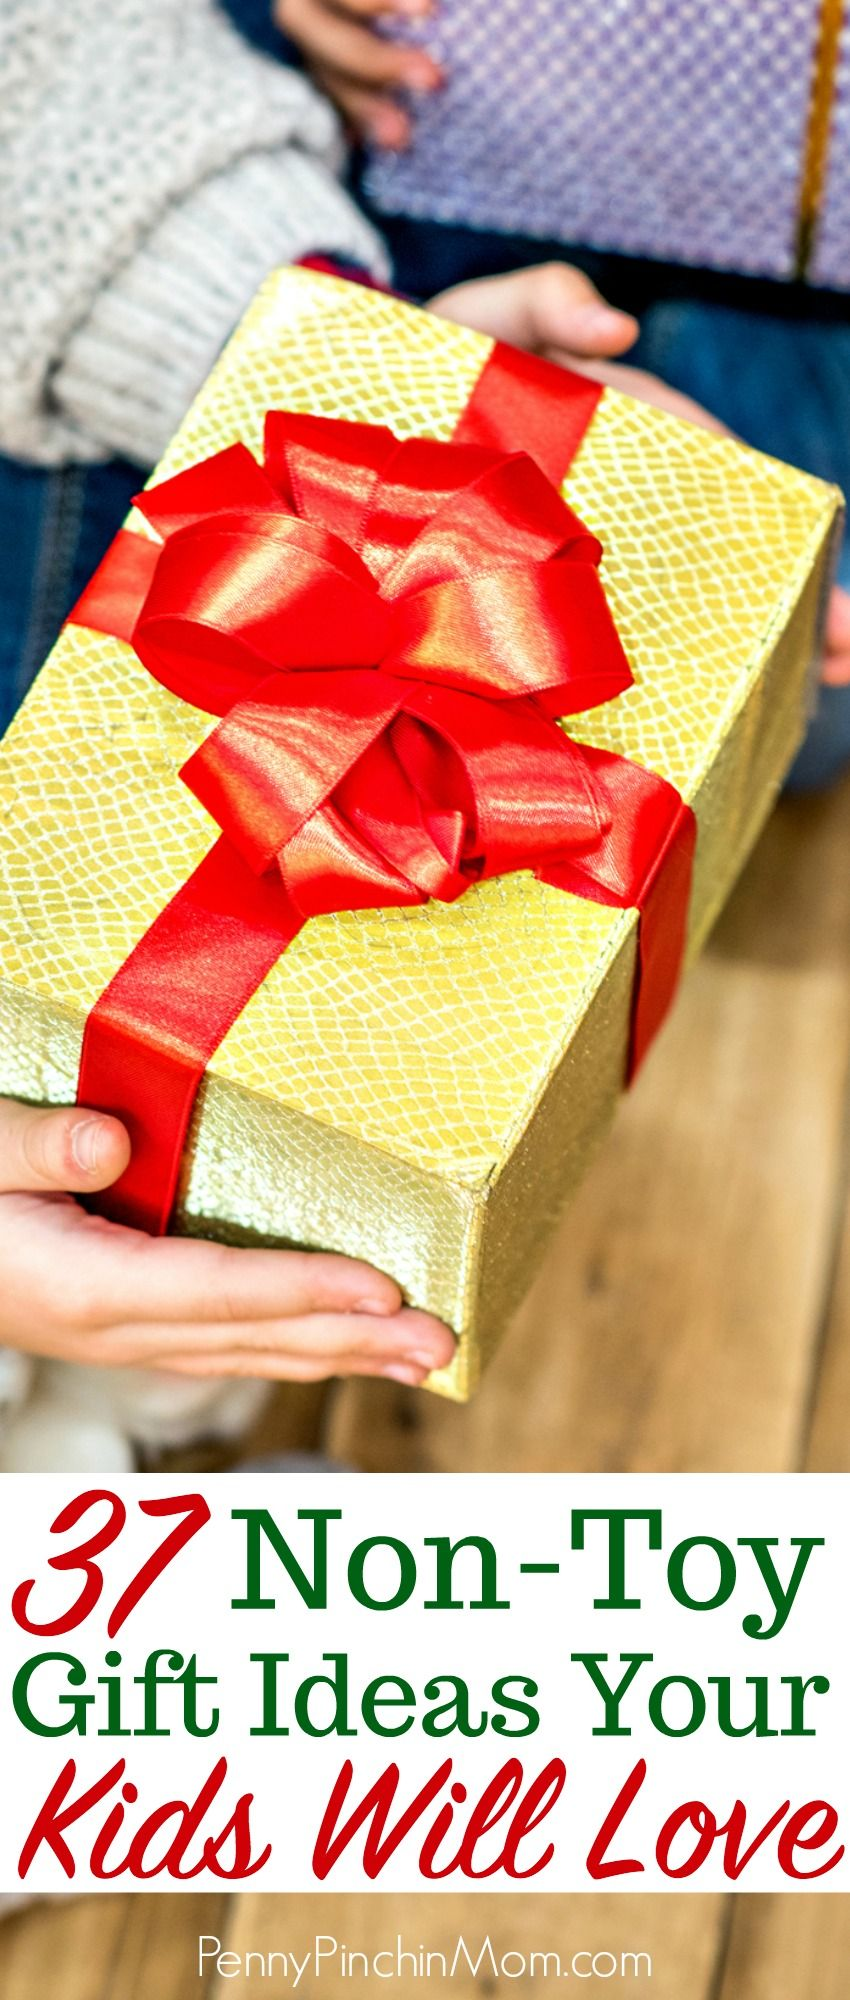 Non-Toy Gift Ideas for Kids | Kid kid, Christmas gifts and Toy